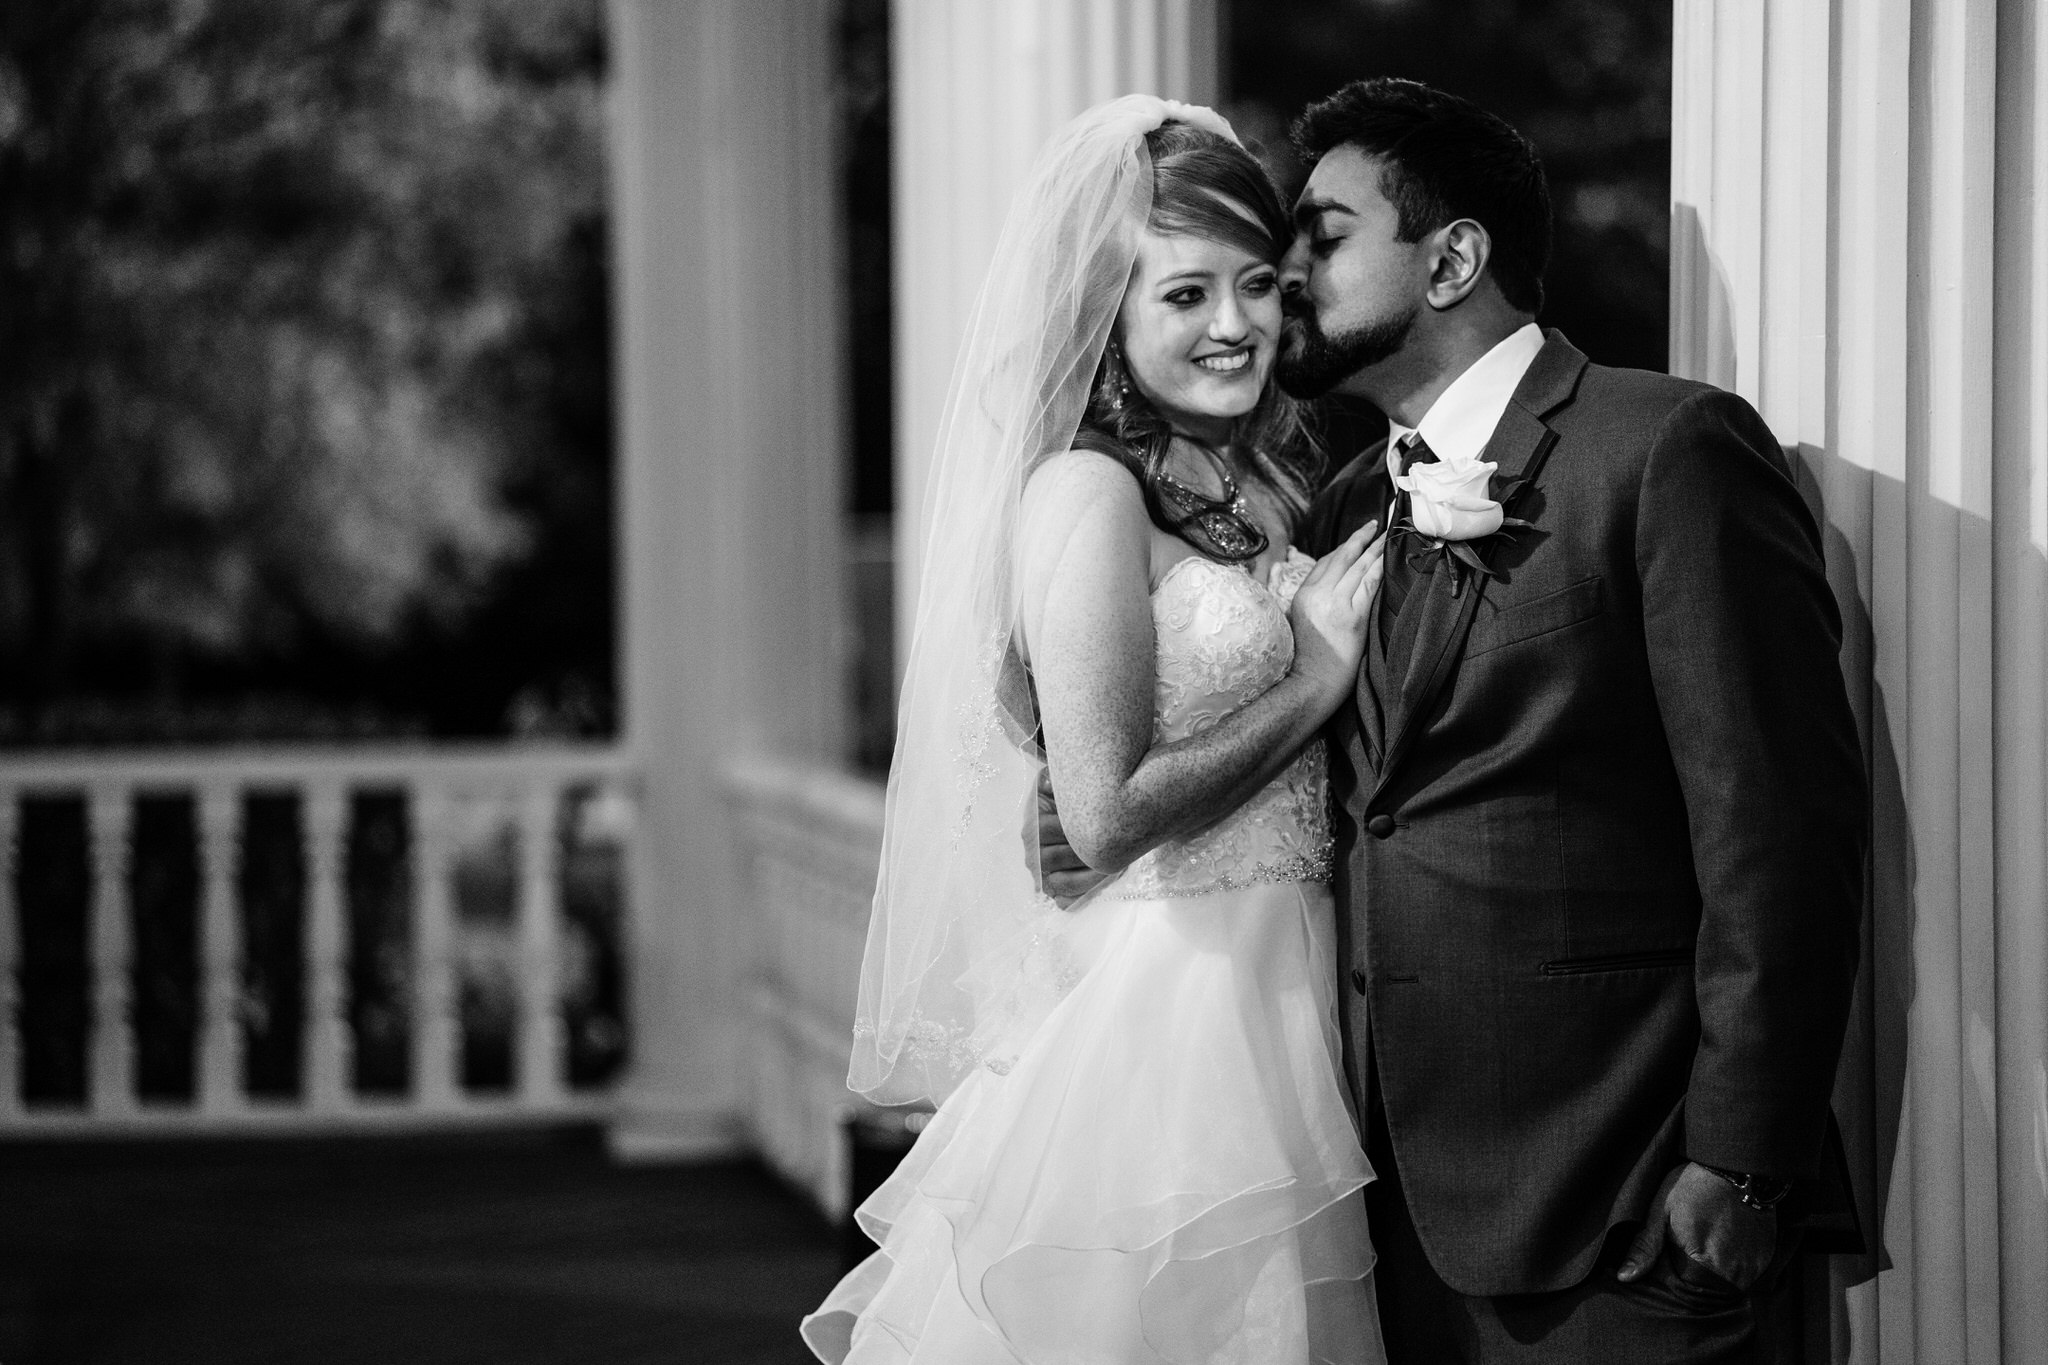 Rachel-Sagar-Garden-on-Millbrook-Wedding-in-Raleigh-NC-031.jpg